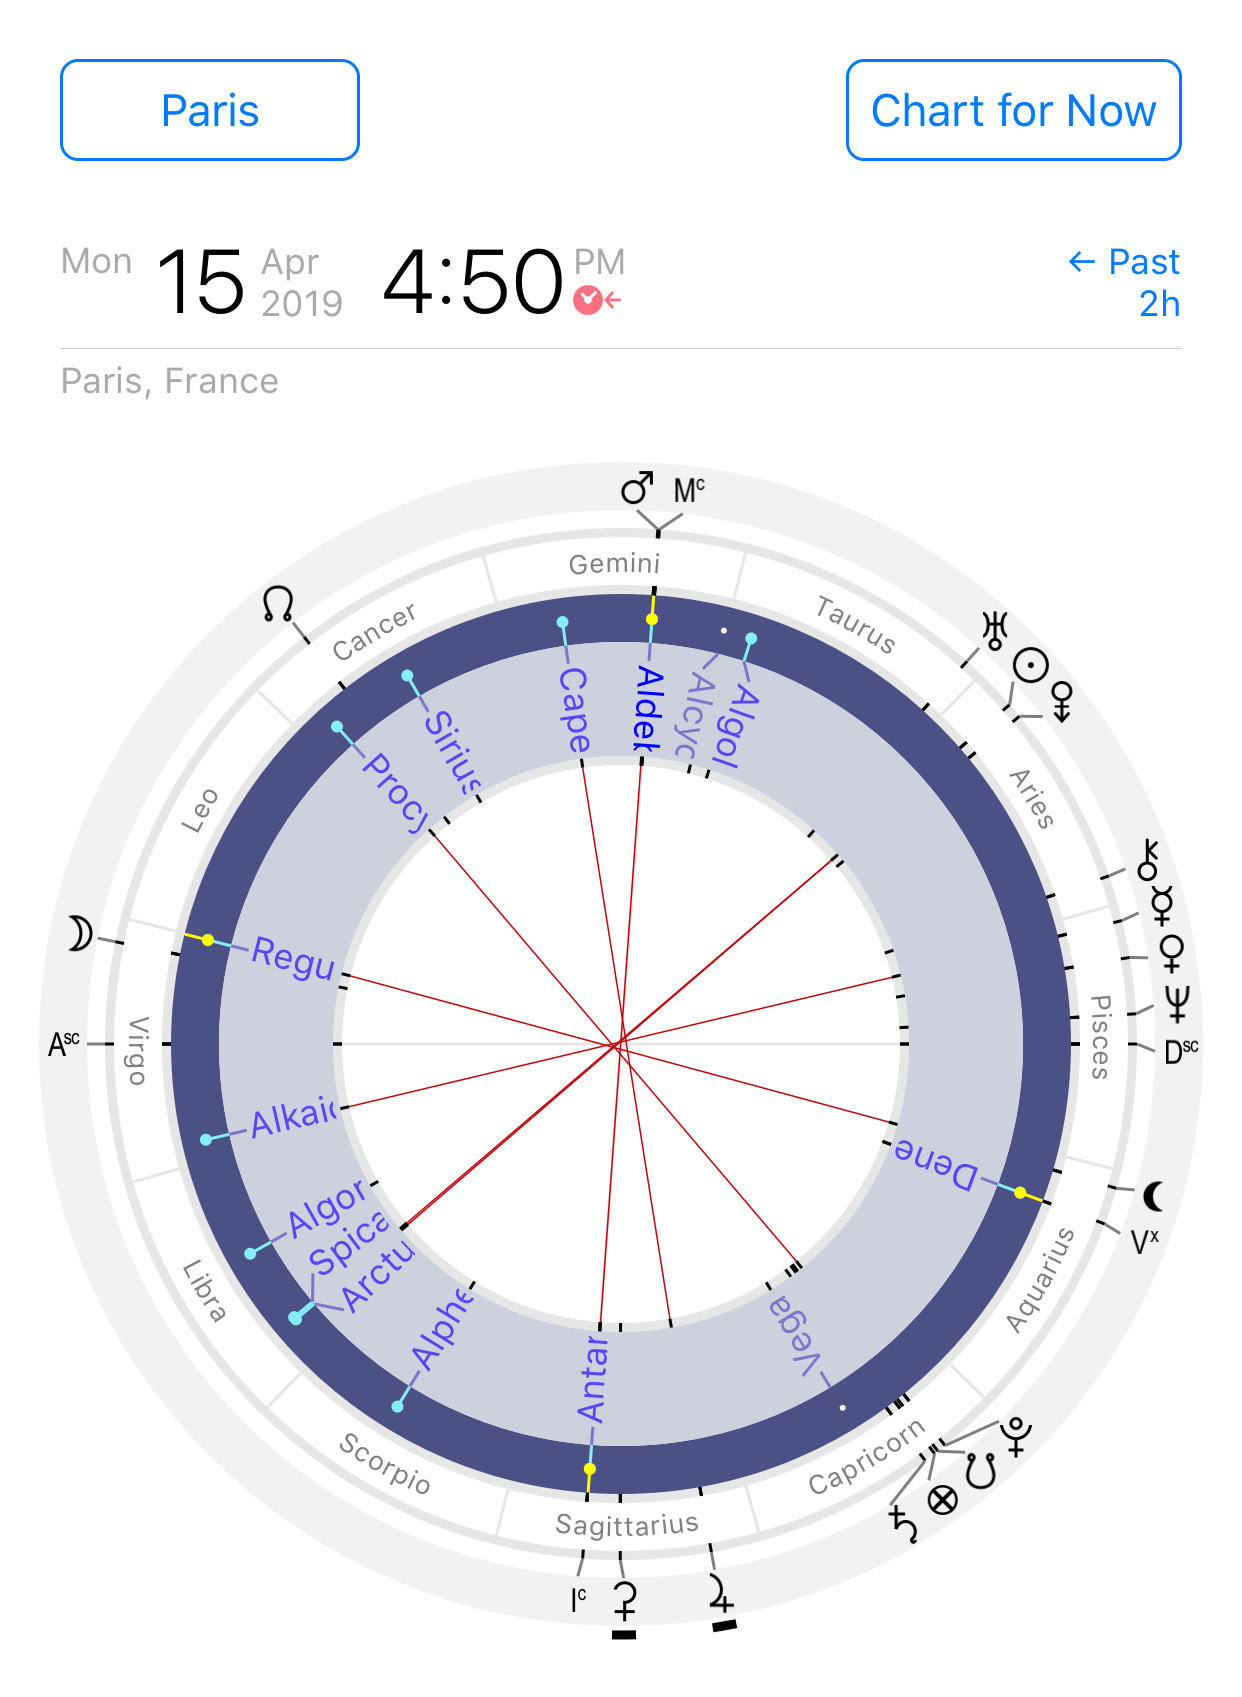 Astrological chart of the fixed stars aspects for Notre-Dame Cathedral fire of 15 April 2019, 16:50, two hours before fire reported